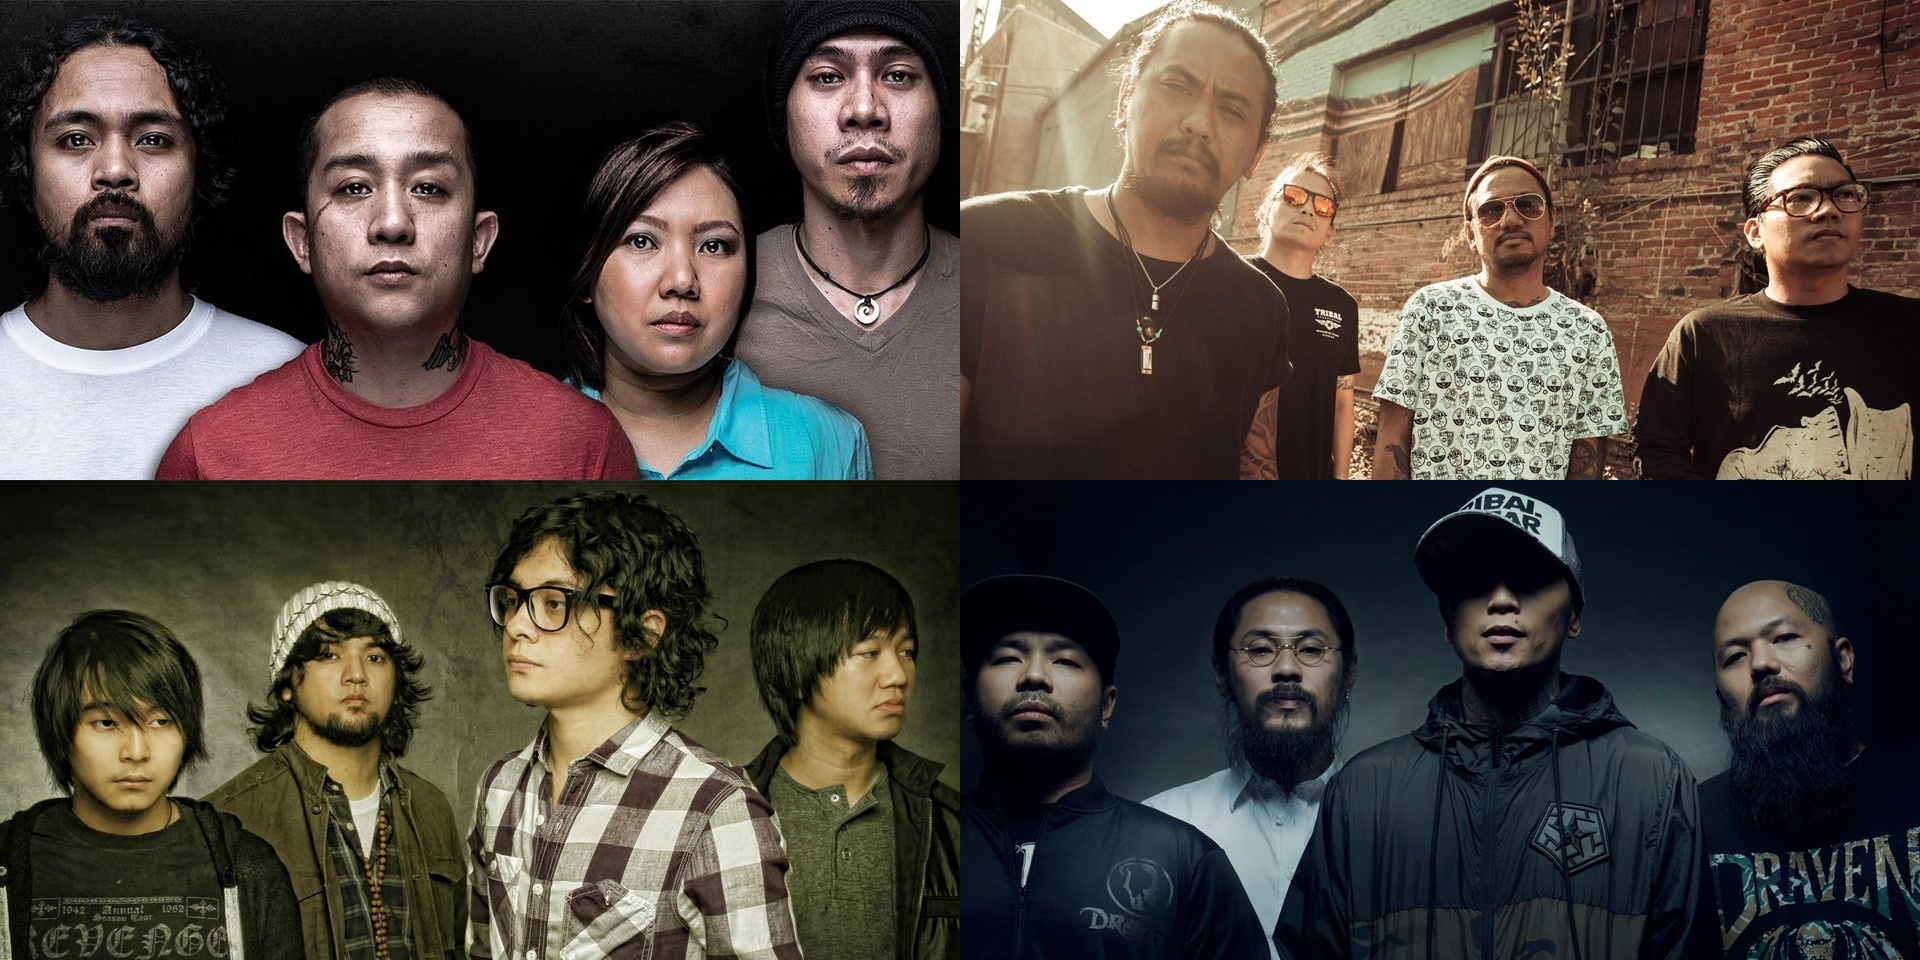 Urbandub, Typecast, Salamin, Wilabaliw, and more to perform at Threadfest 2019